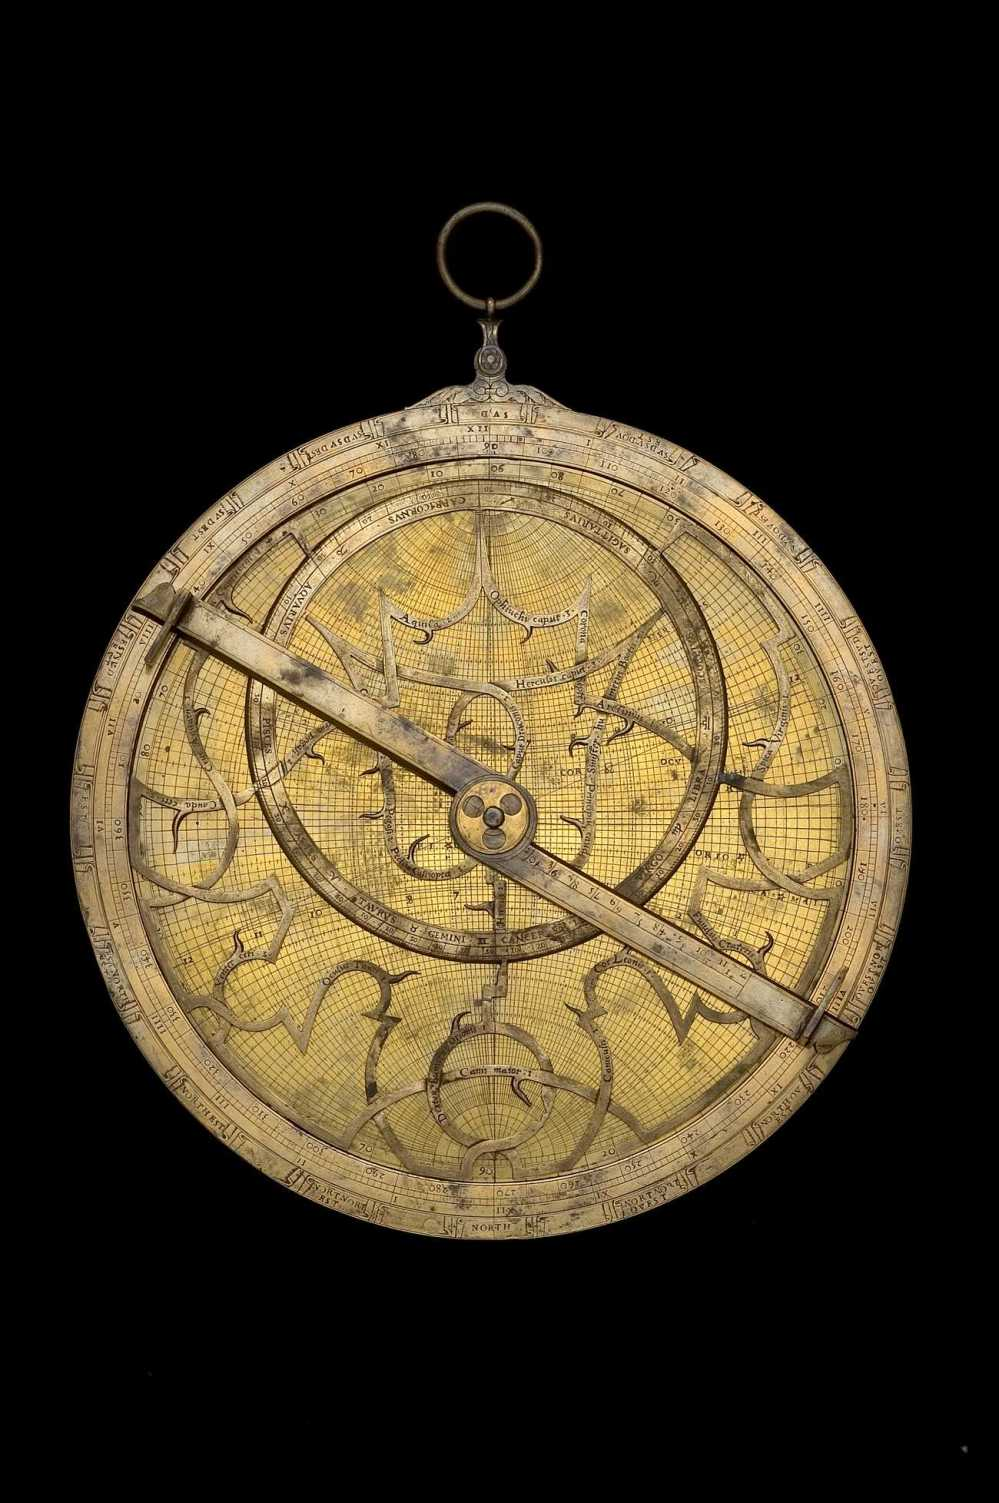 preview image for Astrolabe, French, c. 1570